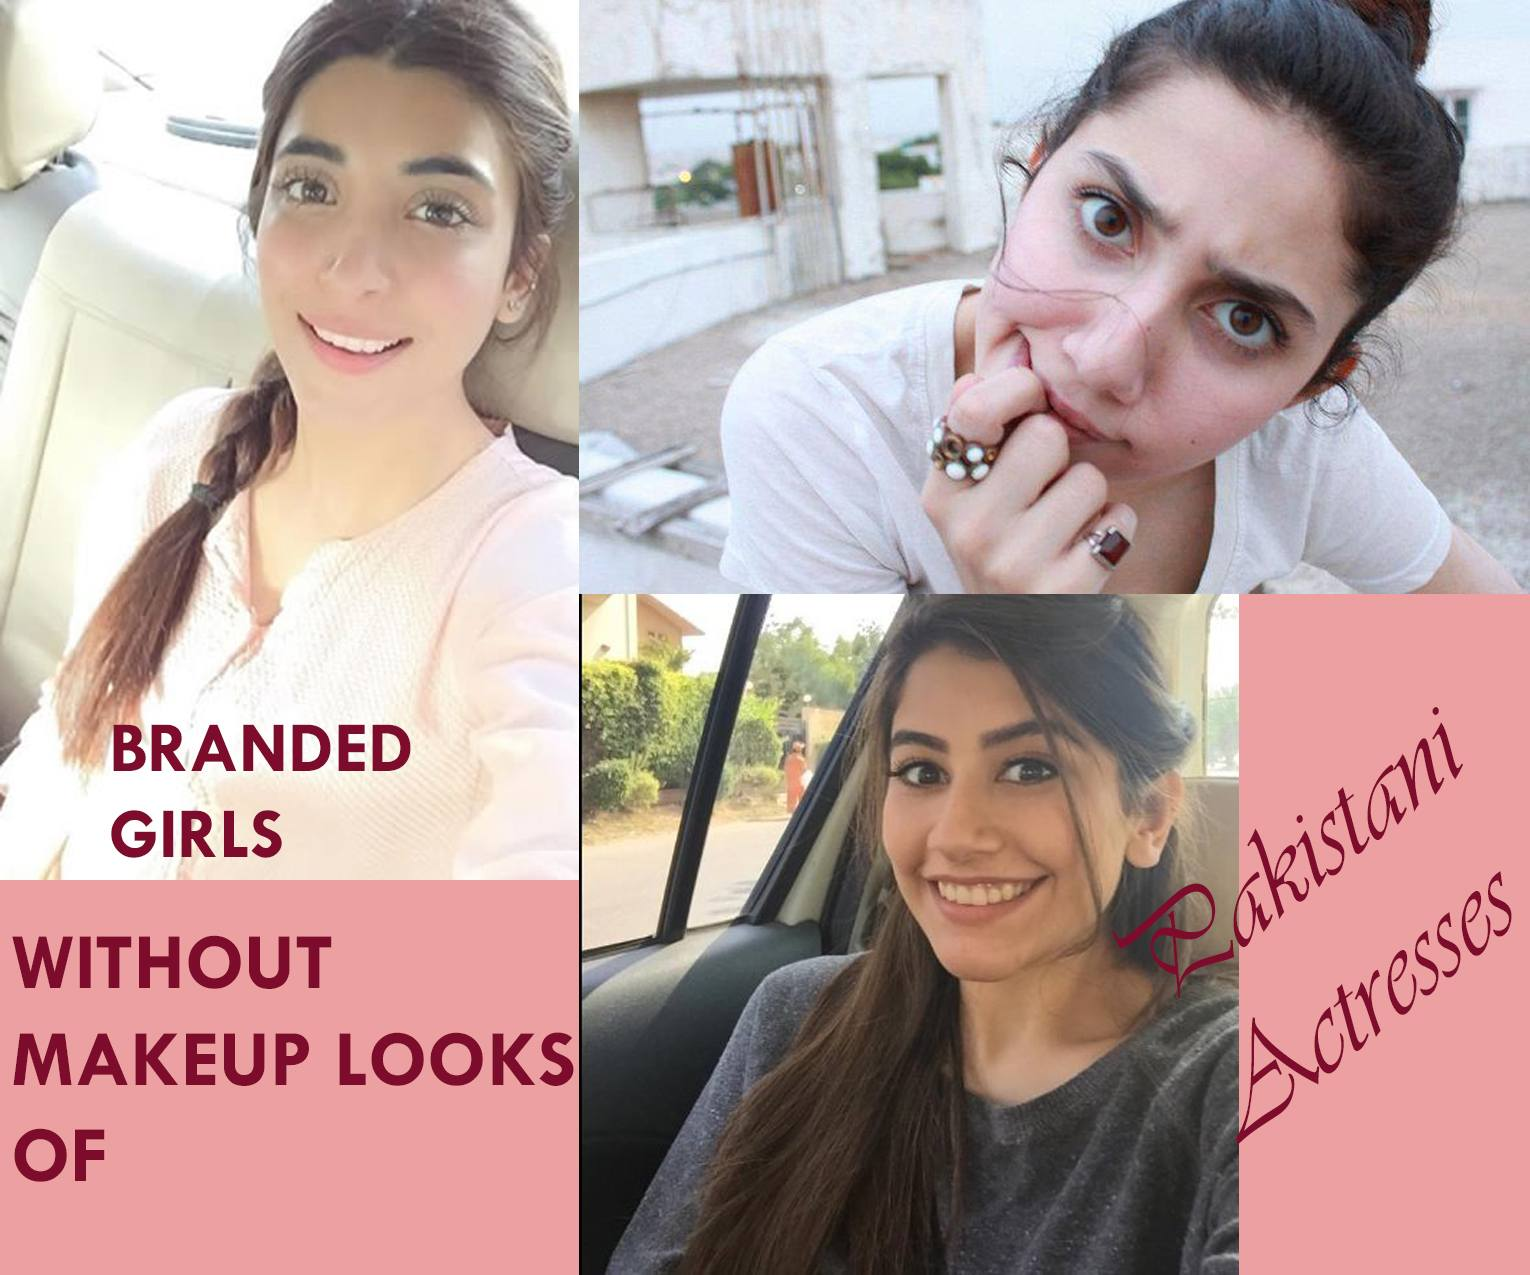 pakistani actresses without makeup-shocking photos of actresses with